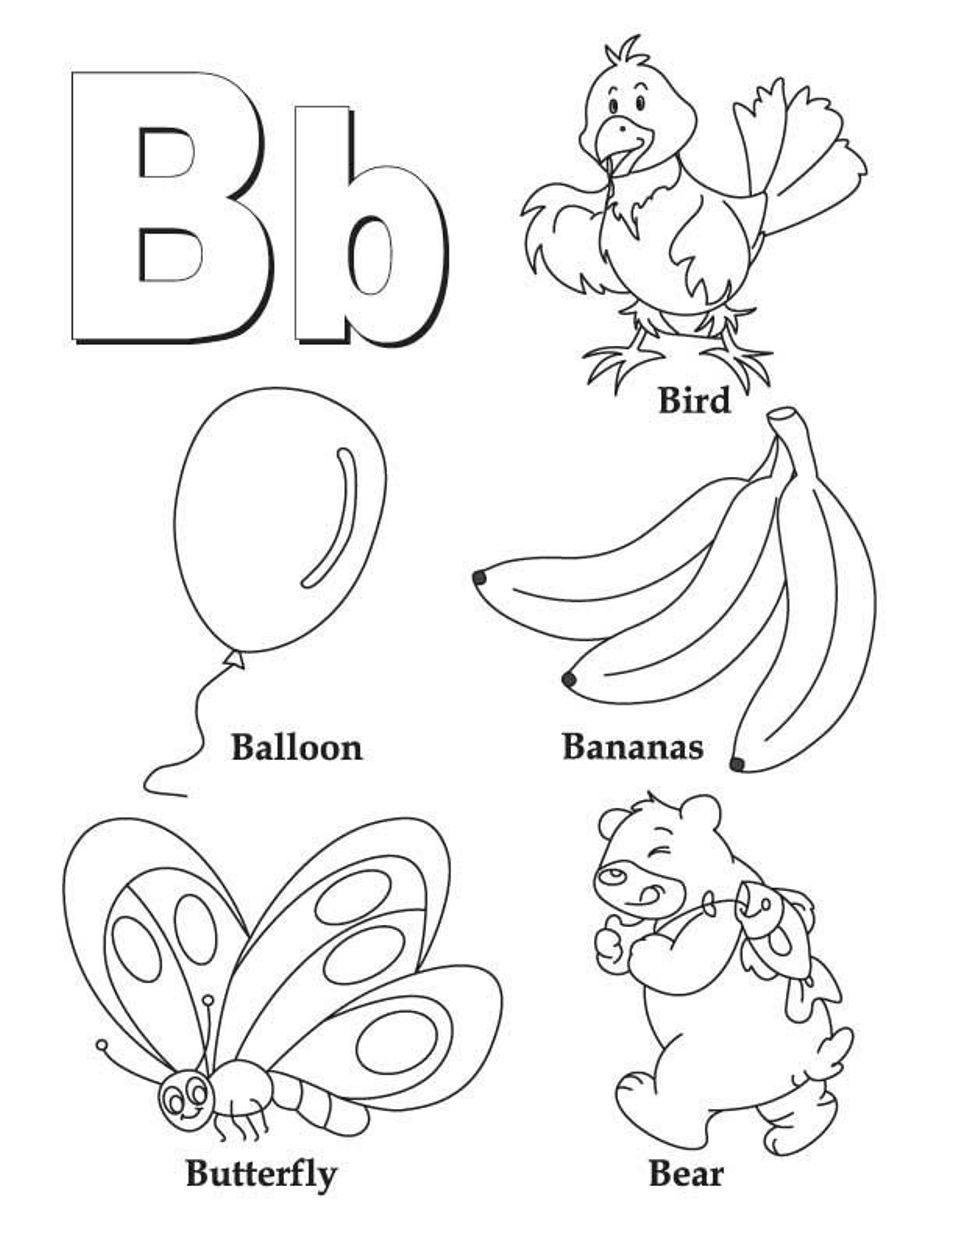 Letter b coloring pages preschool and kindergarten for Free printable alphabet coloring pages for kids